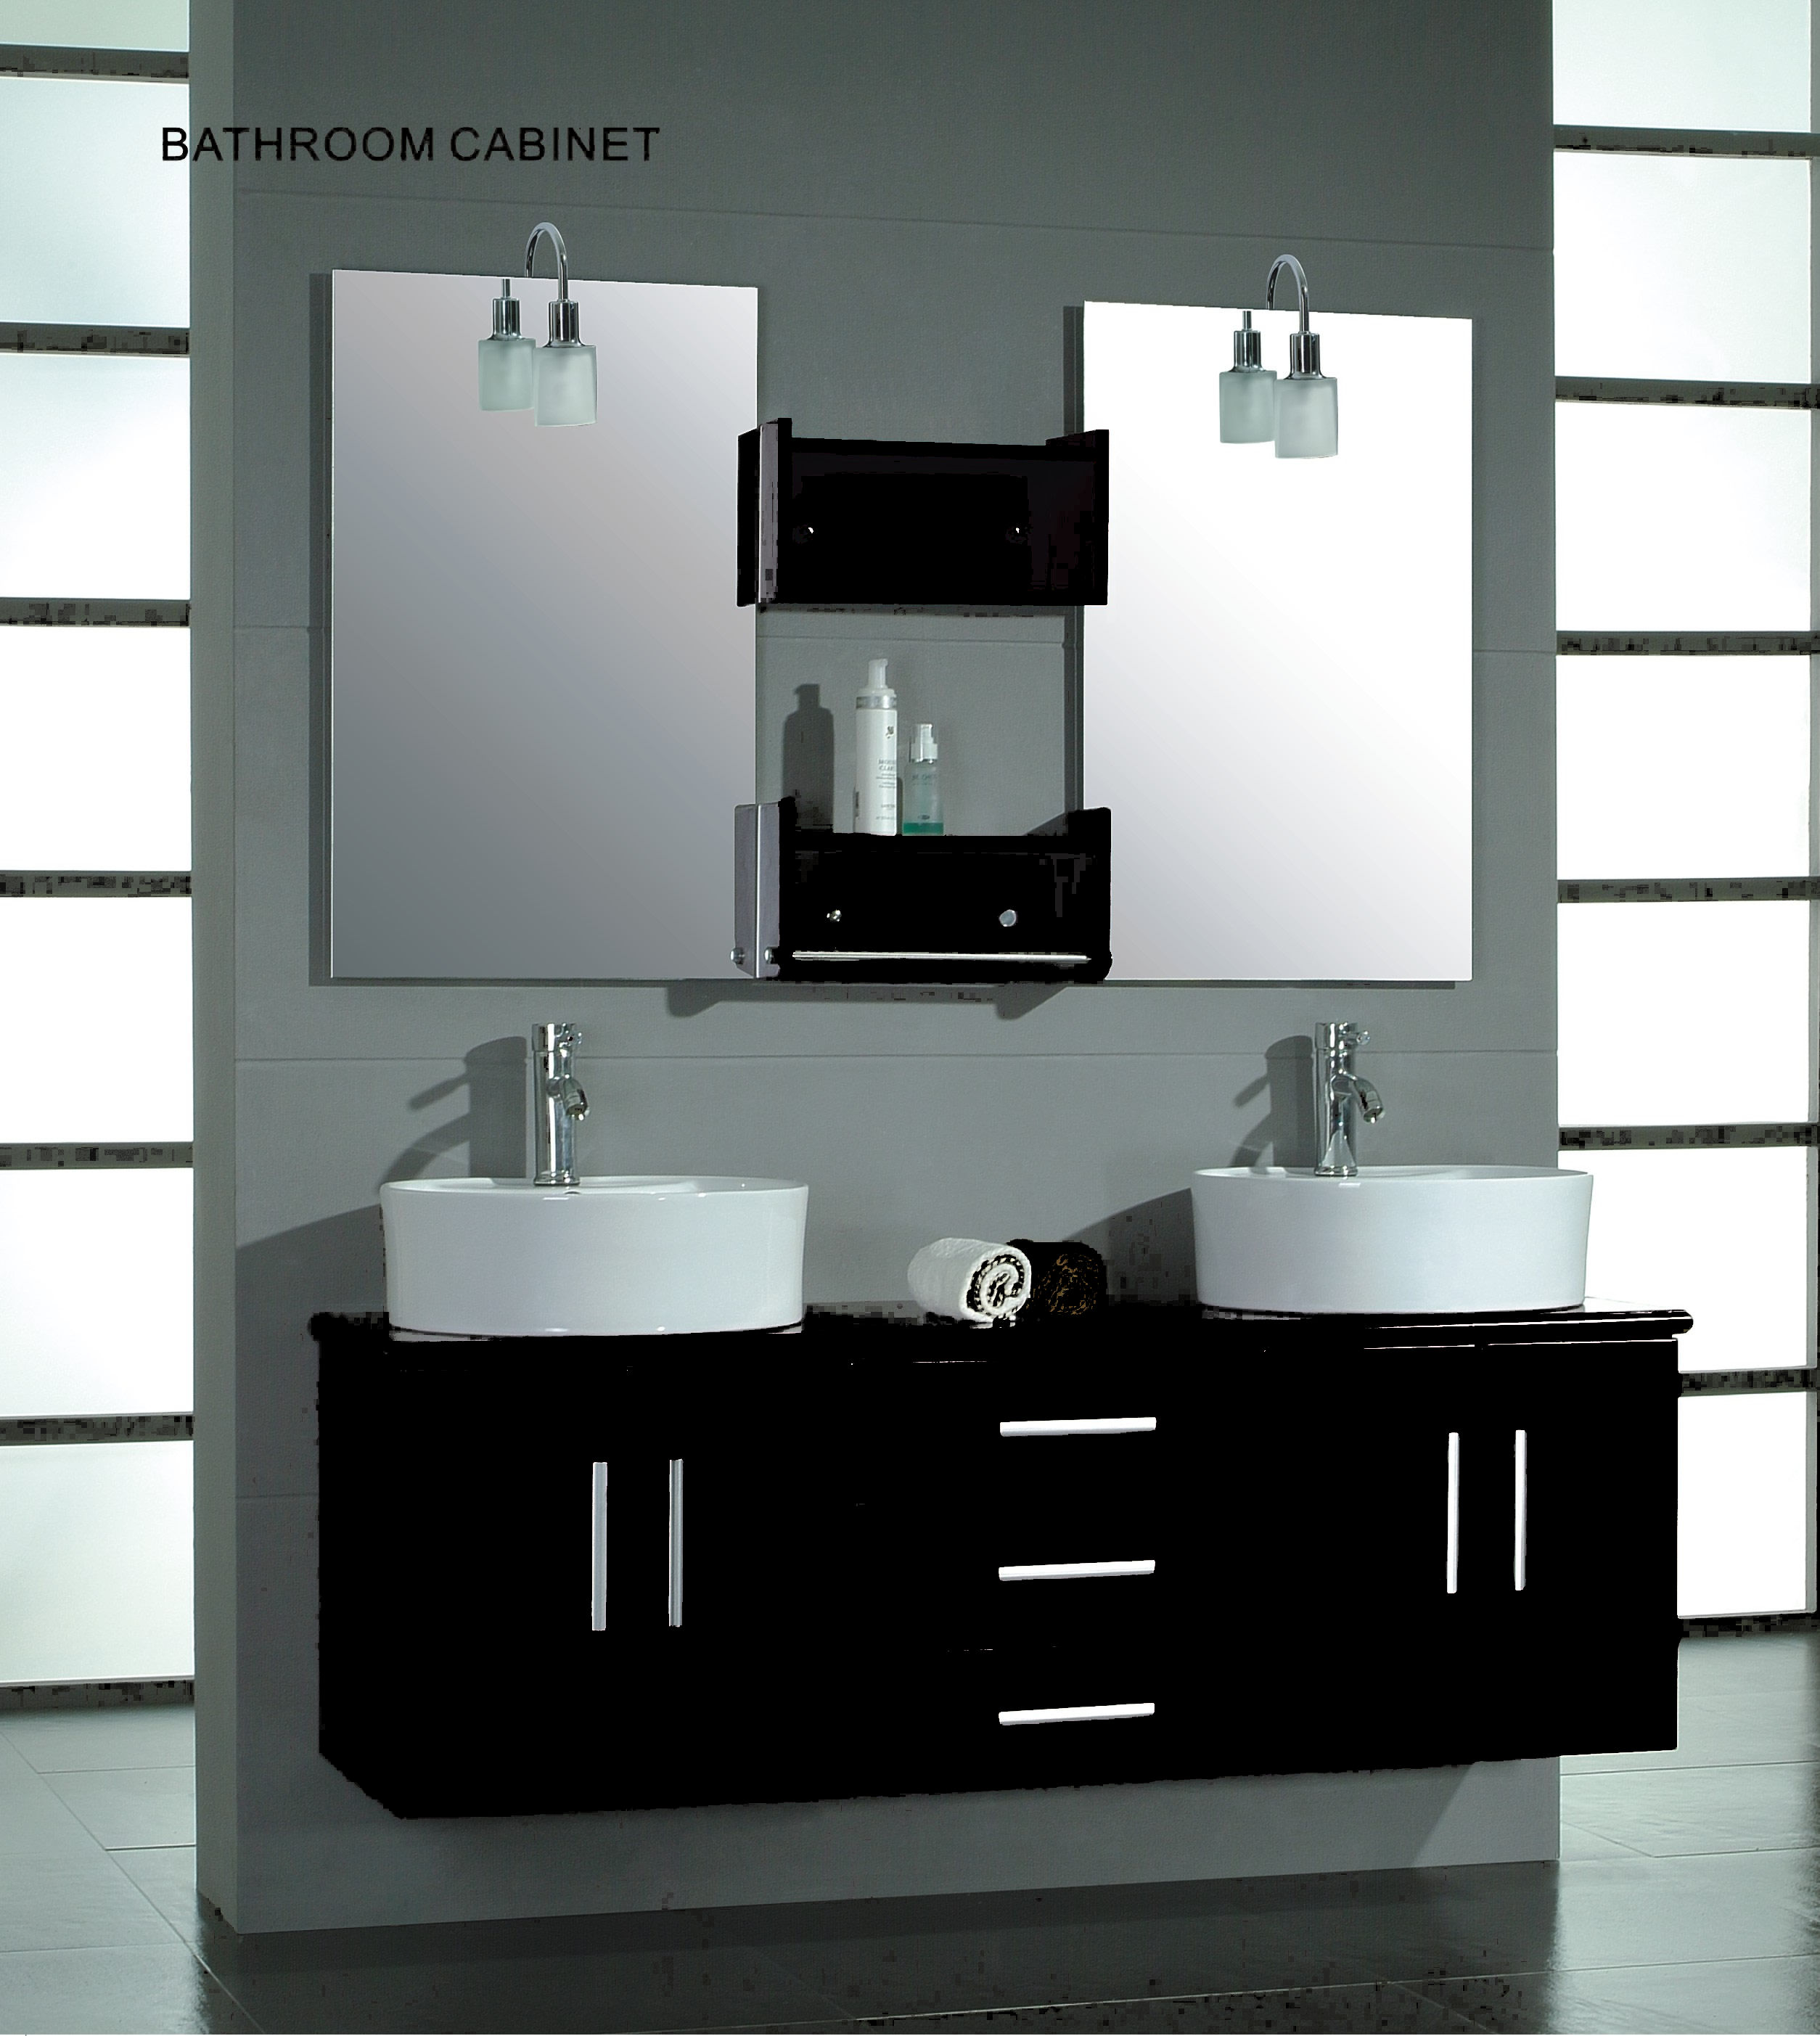 storage modern shelf decoration mount with bathroom cabinet ebay cupboard mirror wall gallery